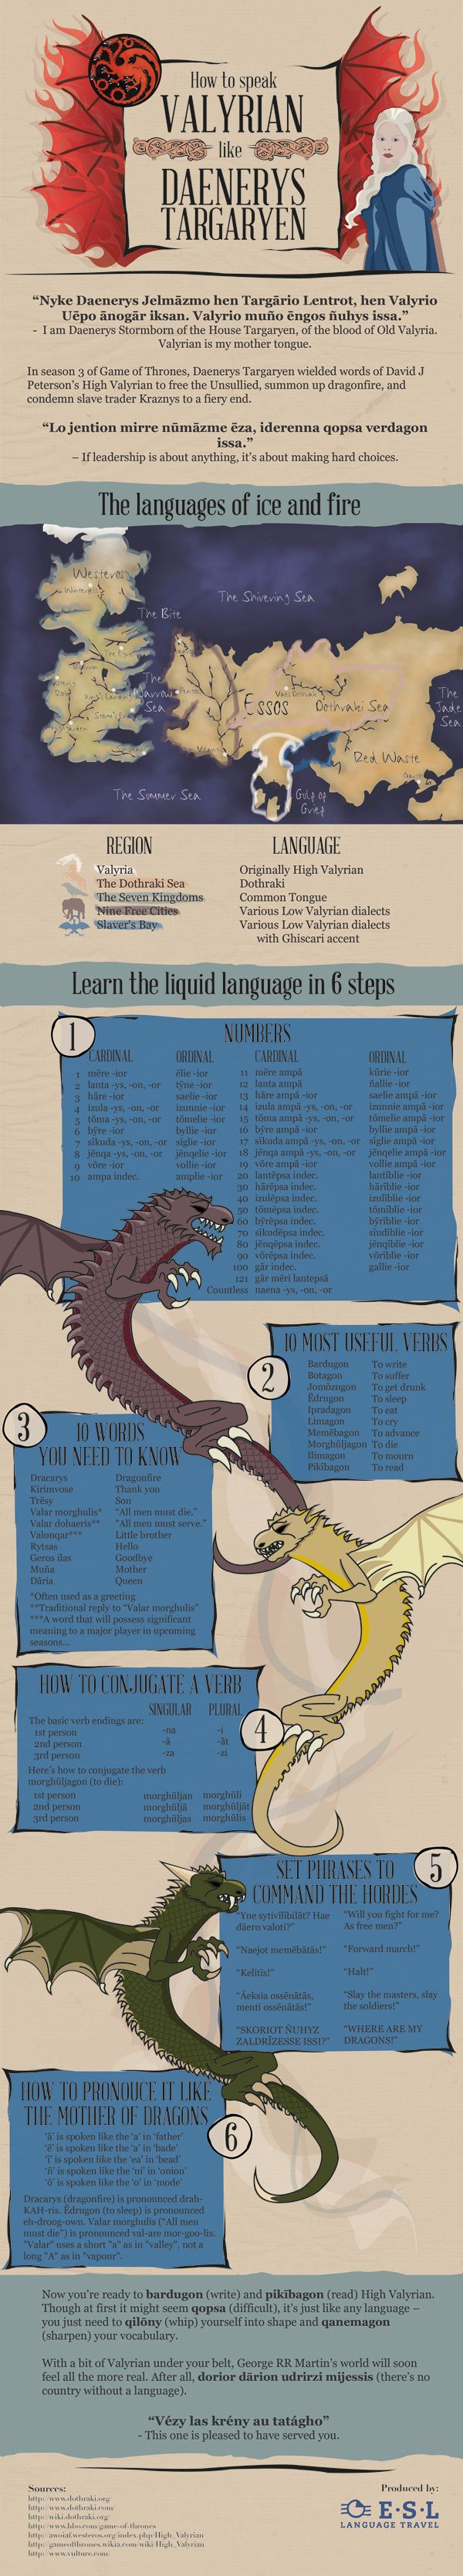 How To Speak Valyrian. Why I feel the need to do this, I don't know.